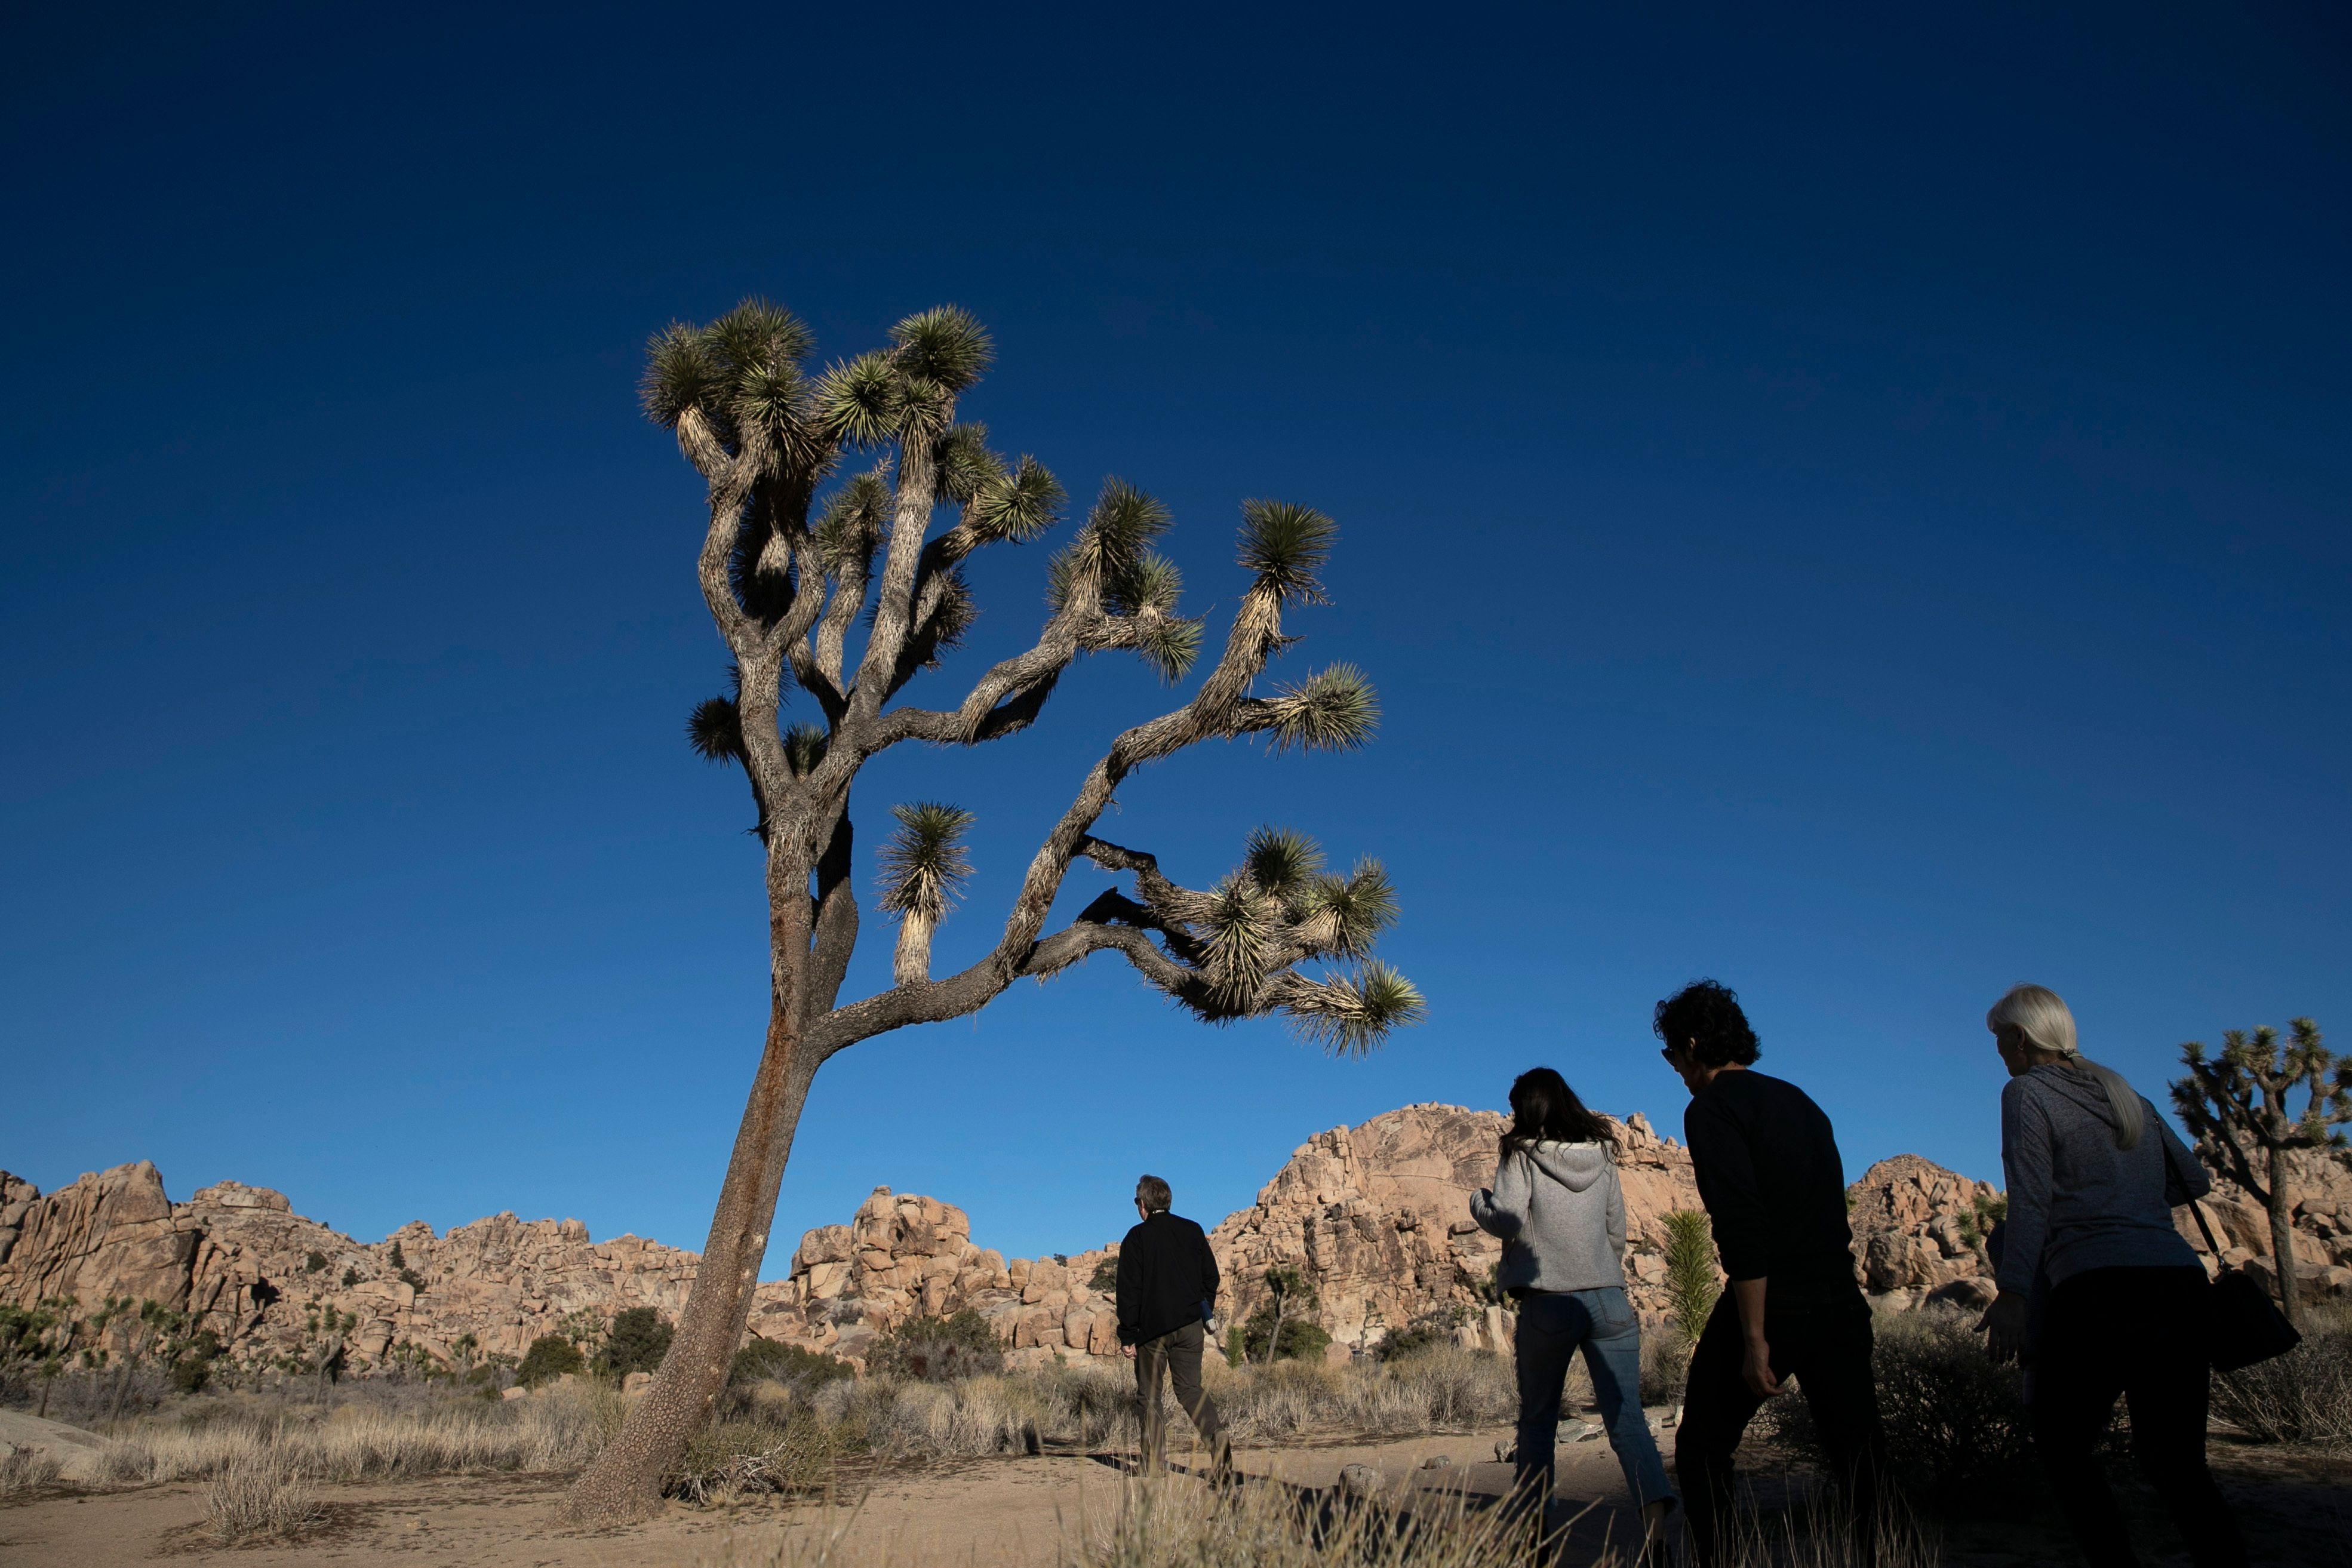 Joshua Tree National Park suffered extensive damage during the partial government shutdown.